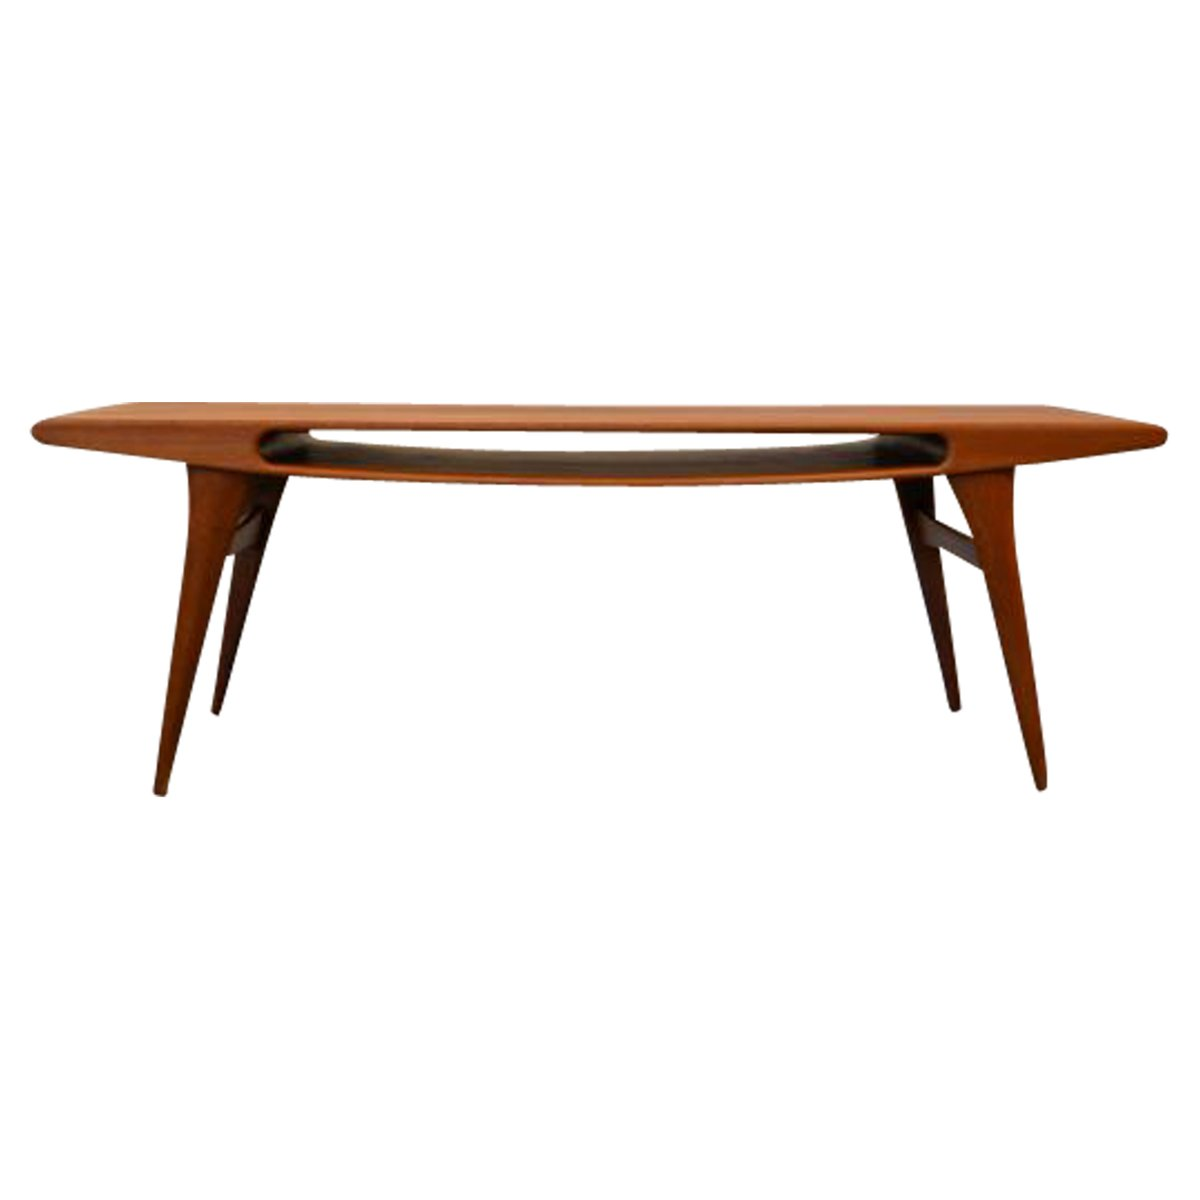 Vintage Danish Teak Coffee Table With Smile Opening For Sale At Pamono Gallery